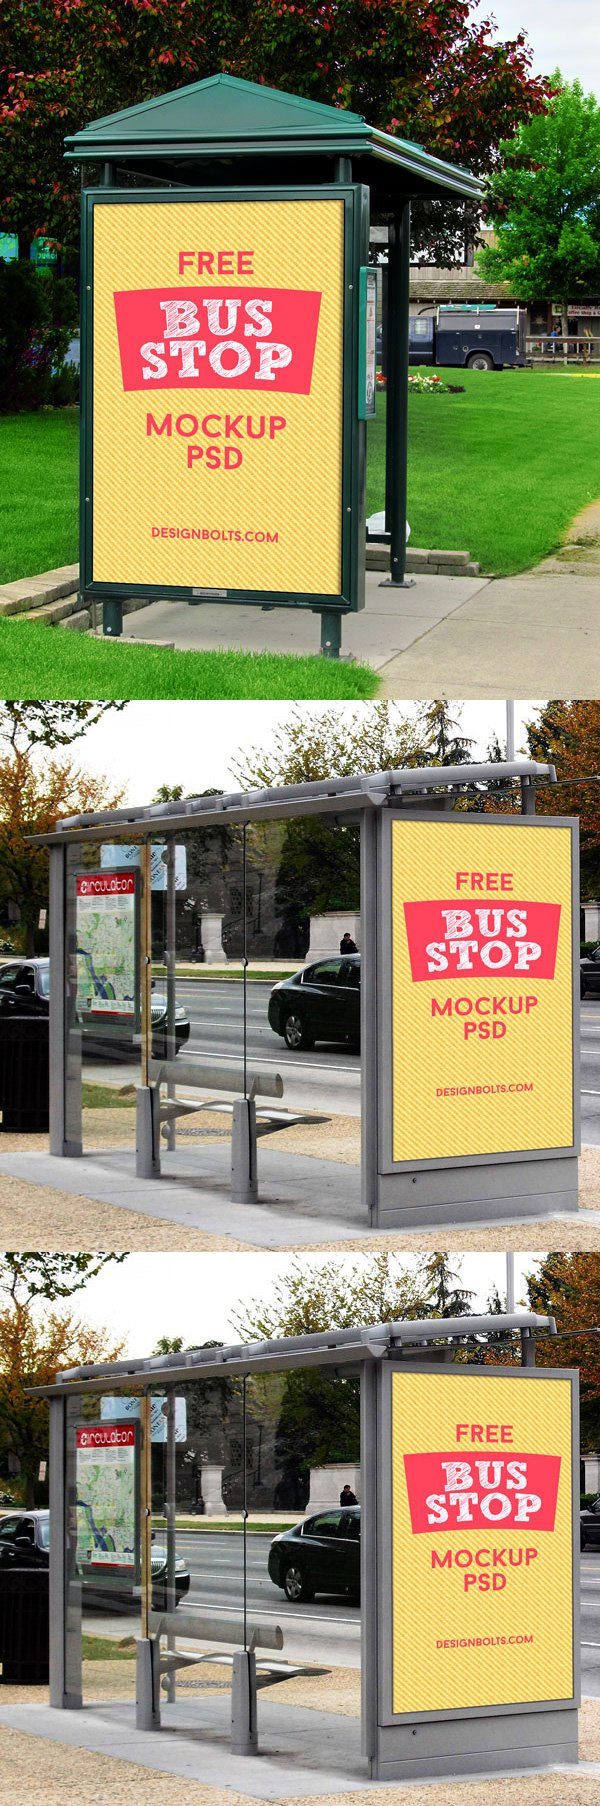 3 Free HQ Outdoor Advertising Bus Stop Mockup